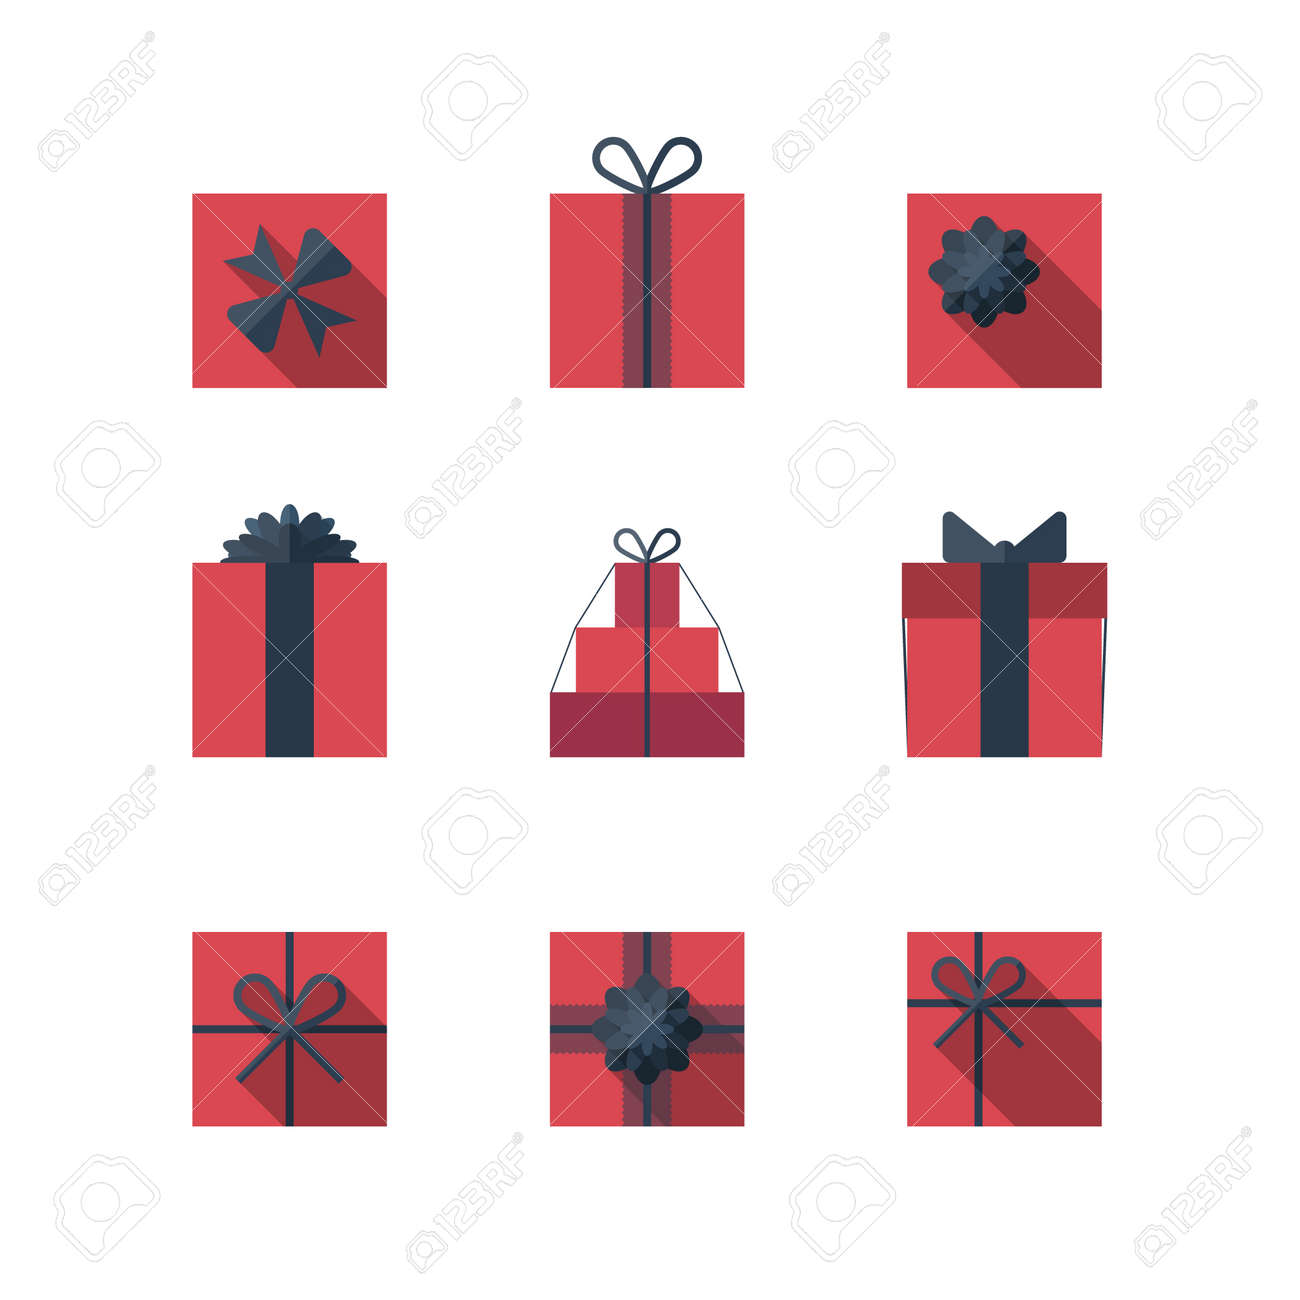 1,285 Top View Gift Boxes Stock Vector Illustration And Royalty ...